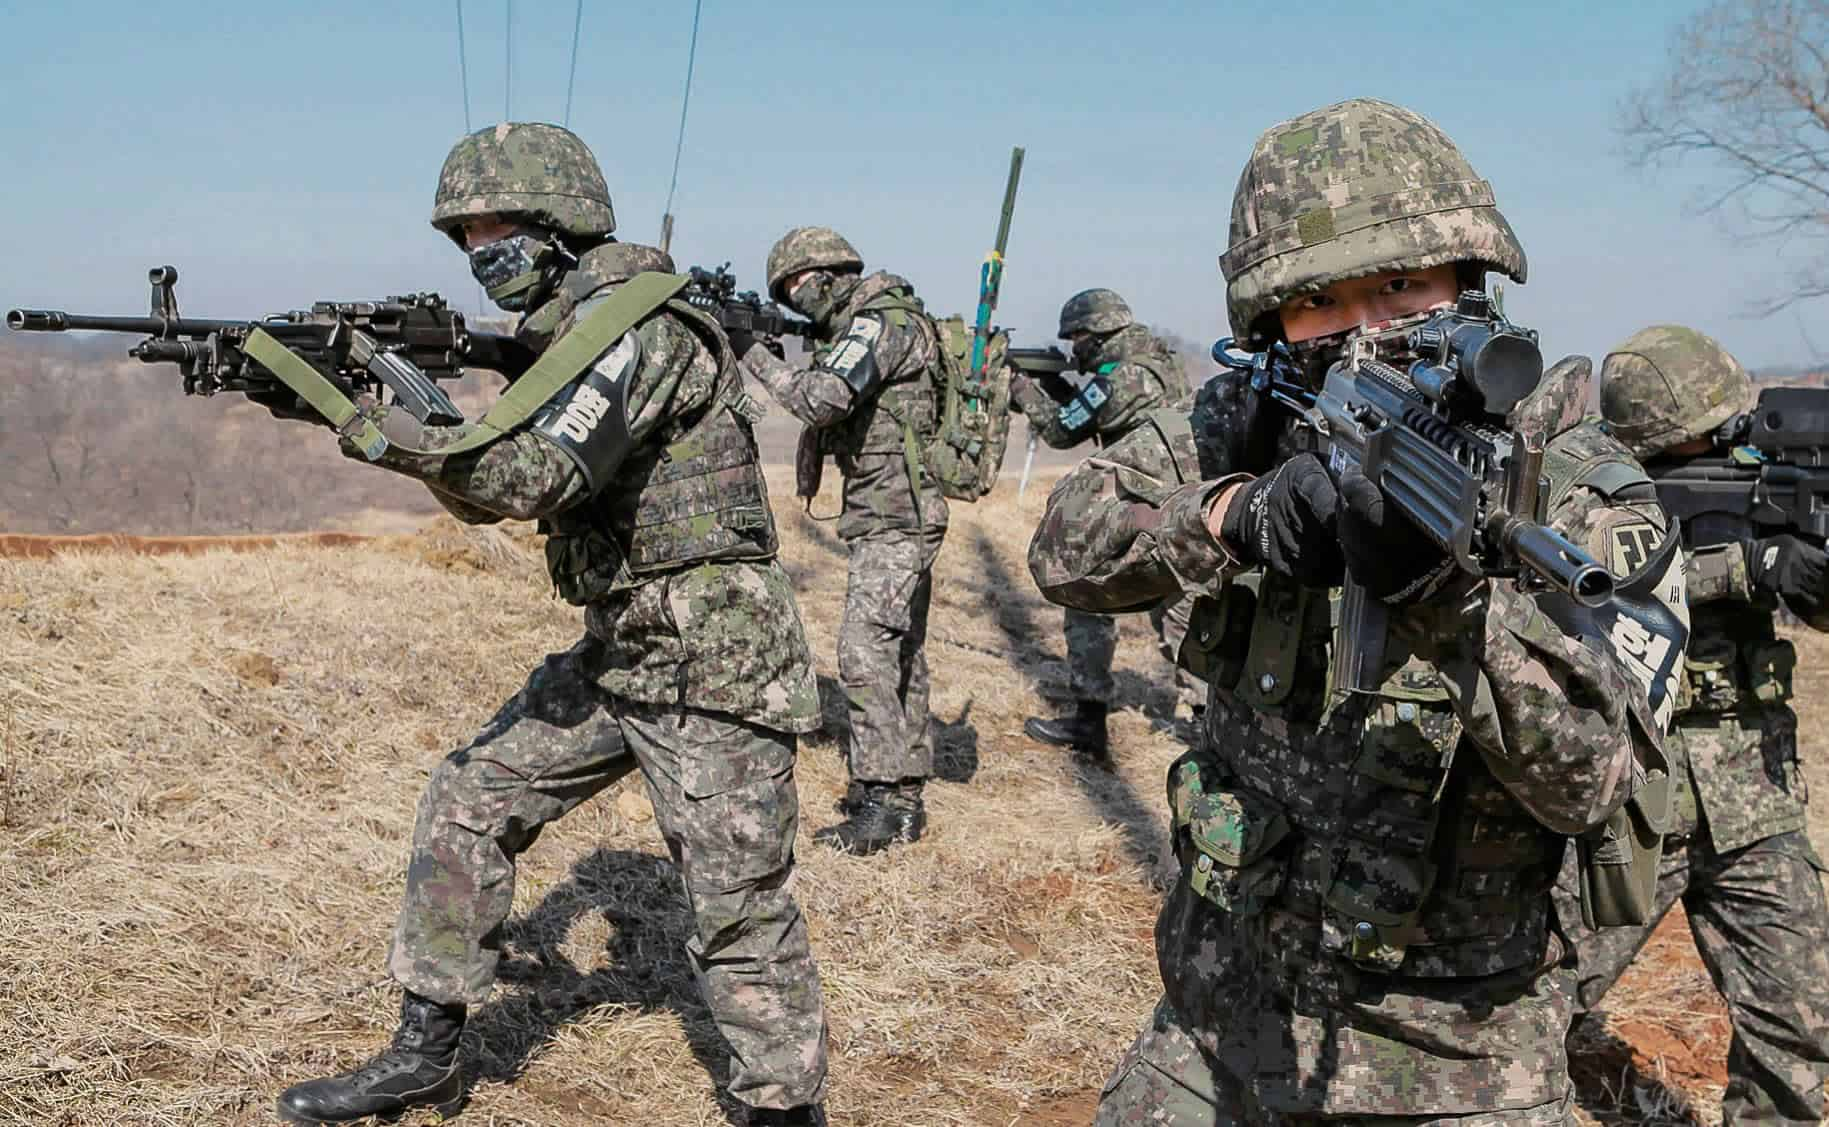 South Korean Scandal Erupts On Military Body Armour After Recent Report Occupational safety and health service in troy, michigan. south korean scandal erupts on military